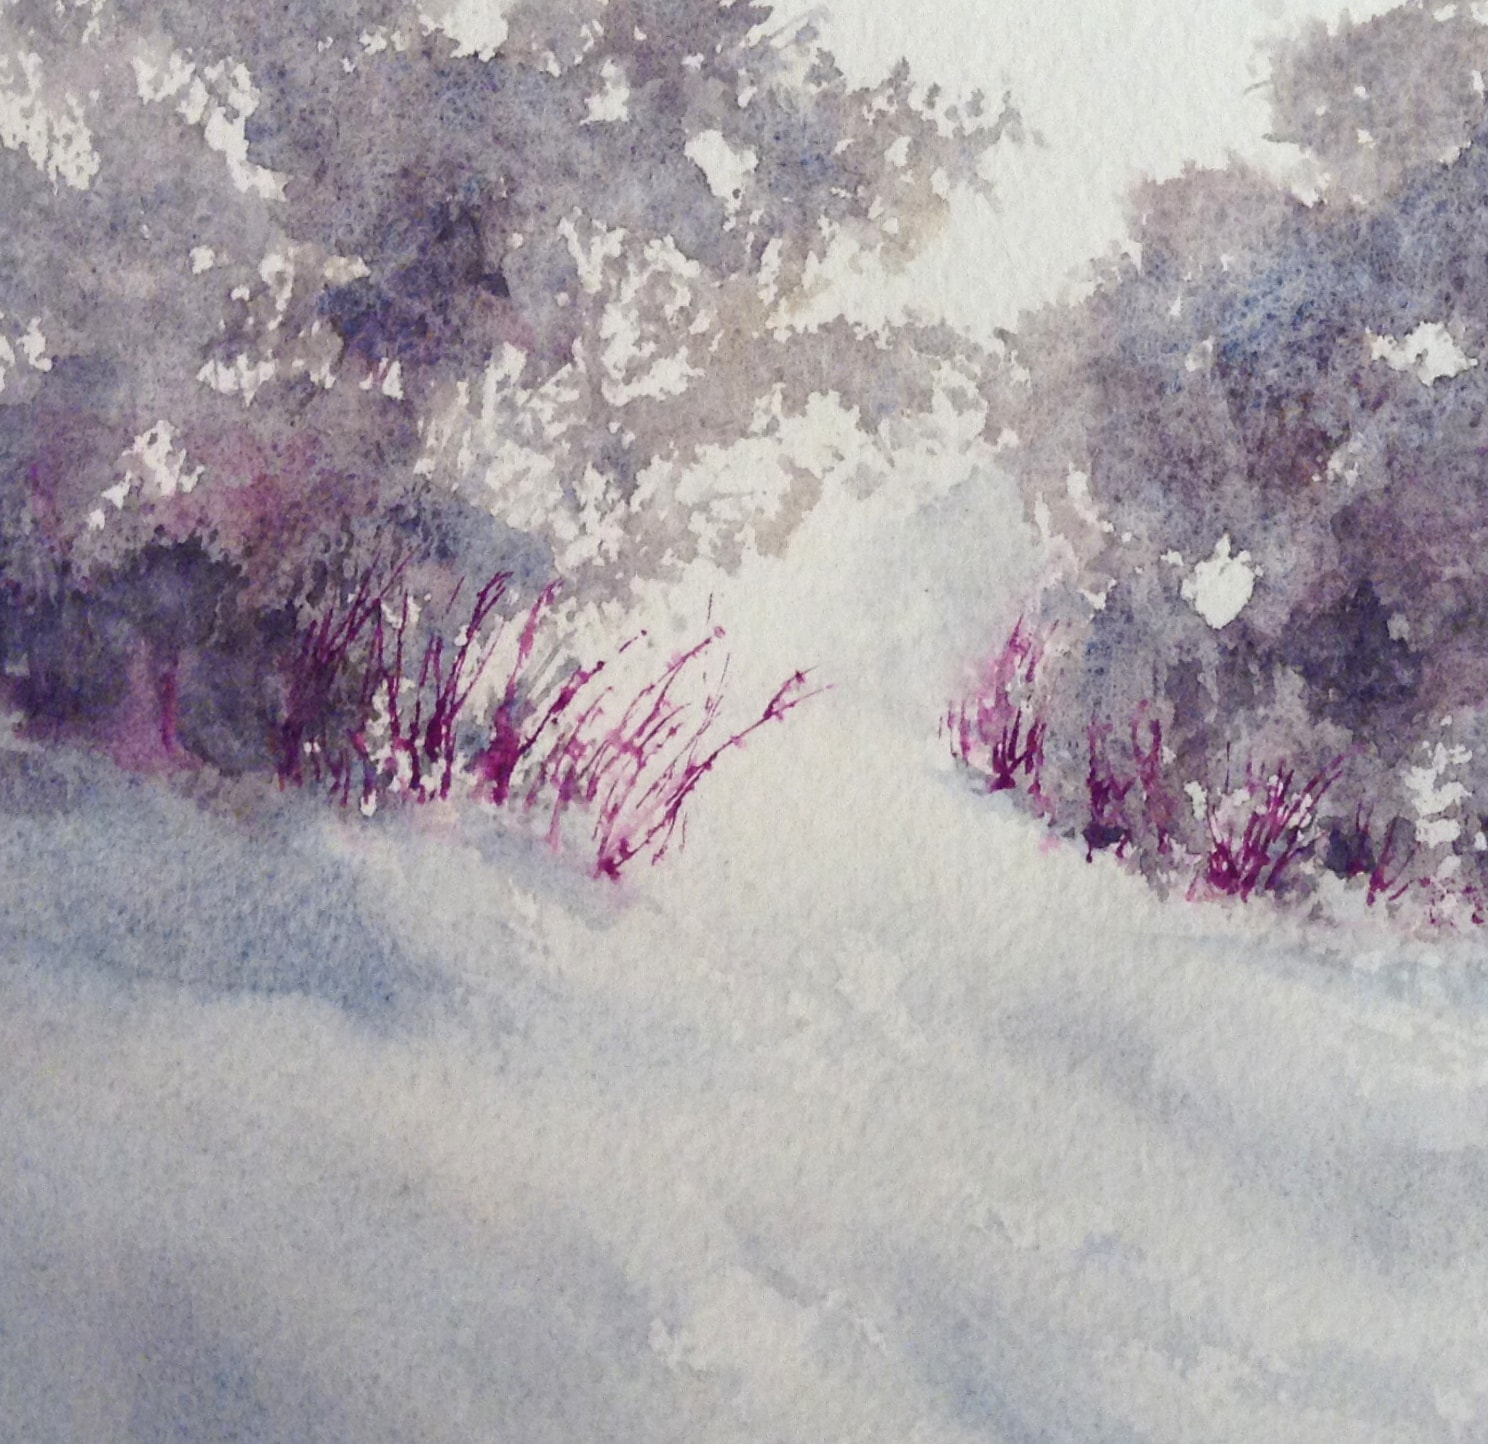 """""""Winter Colors #6"""", mixed watermedia on paper mounted on cradled board, 5x5"""", painting by Lynne Baur"""